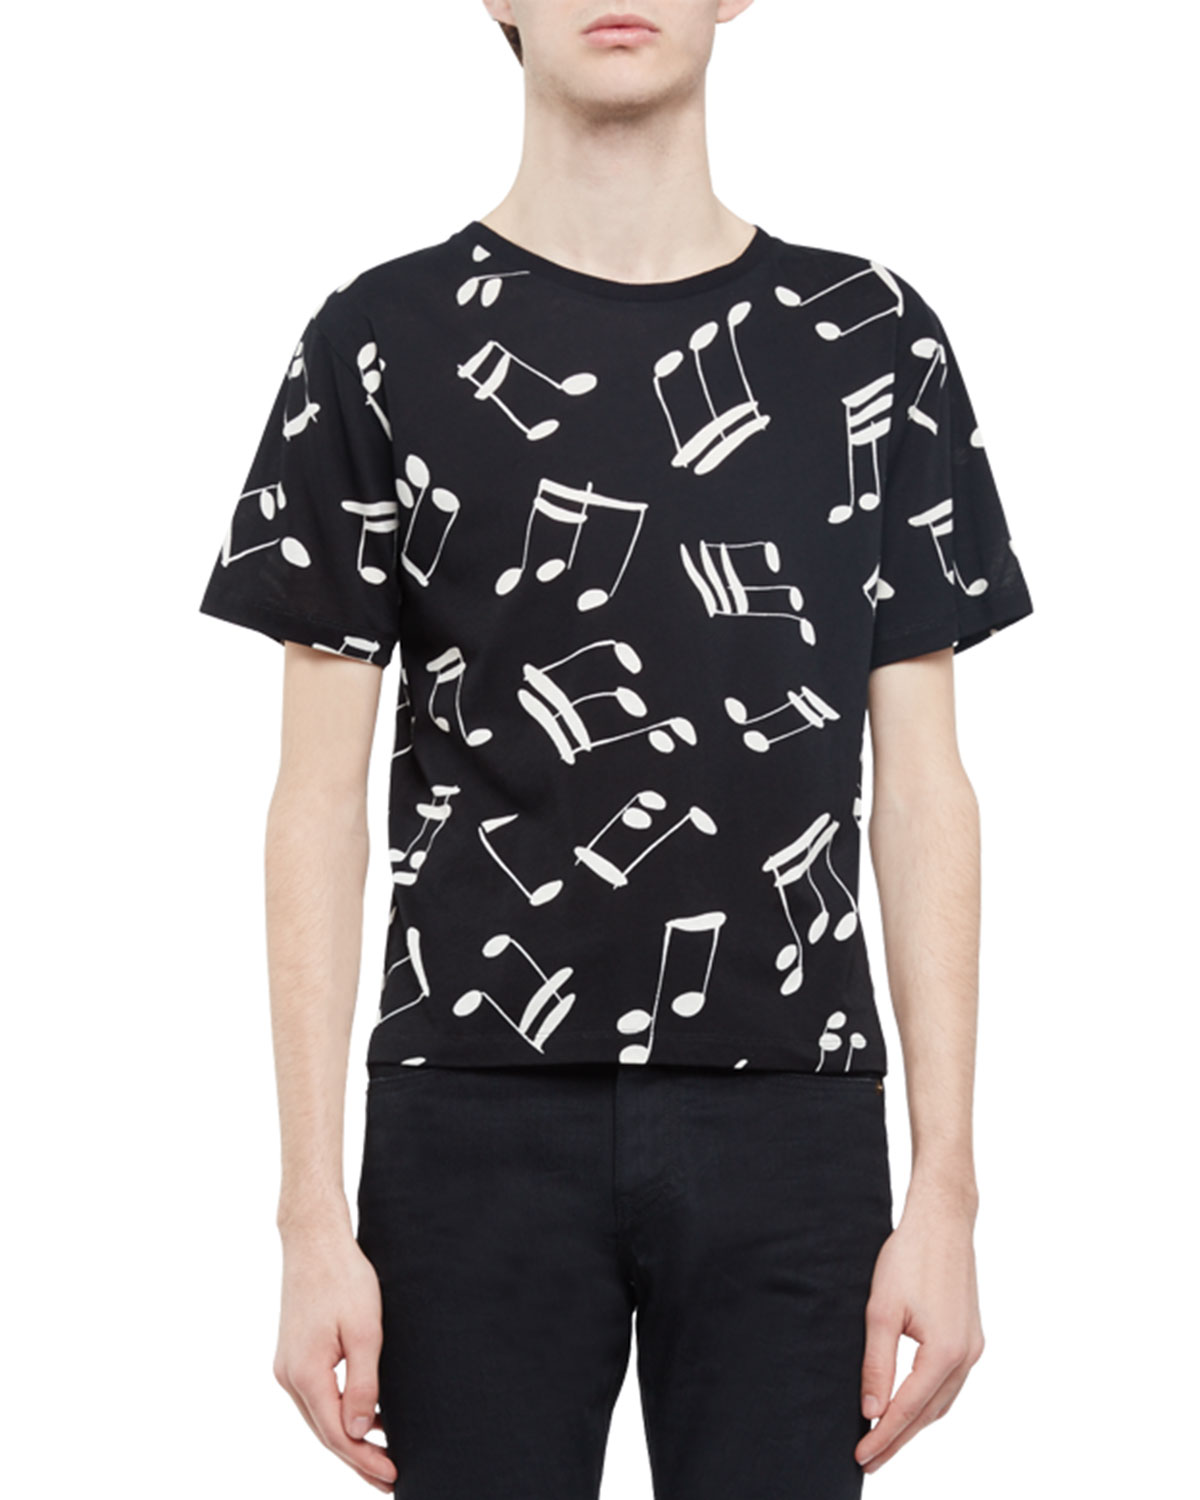 Musical-Note Short-Sleeve T-Shirt, Black/Ivory